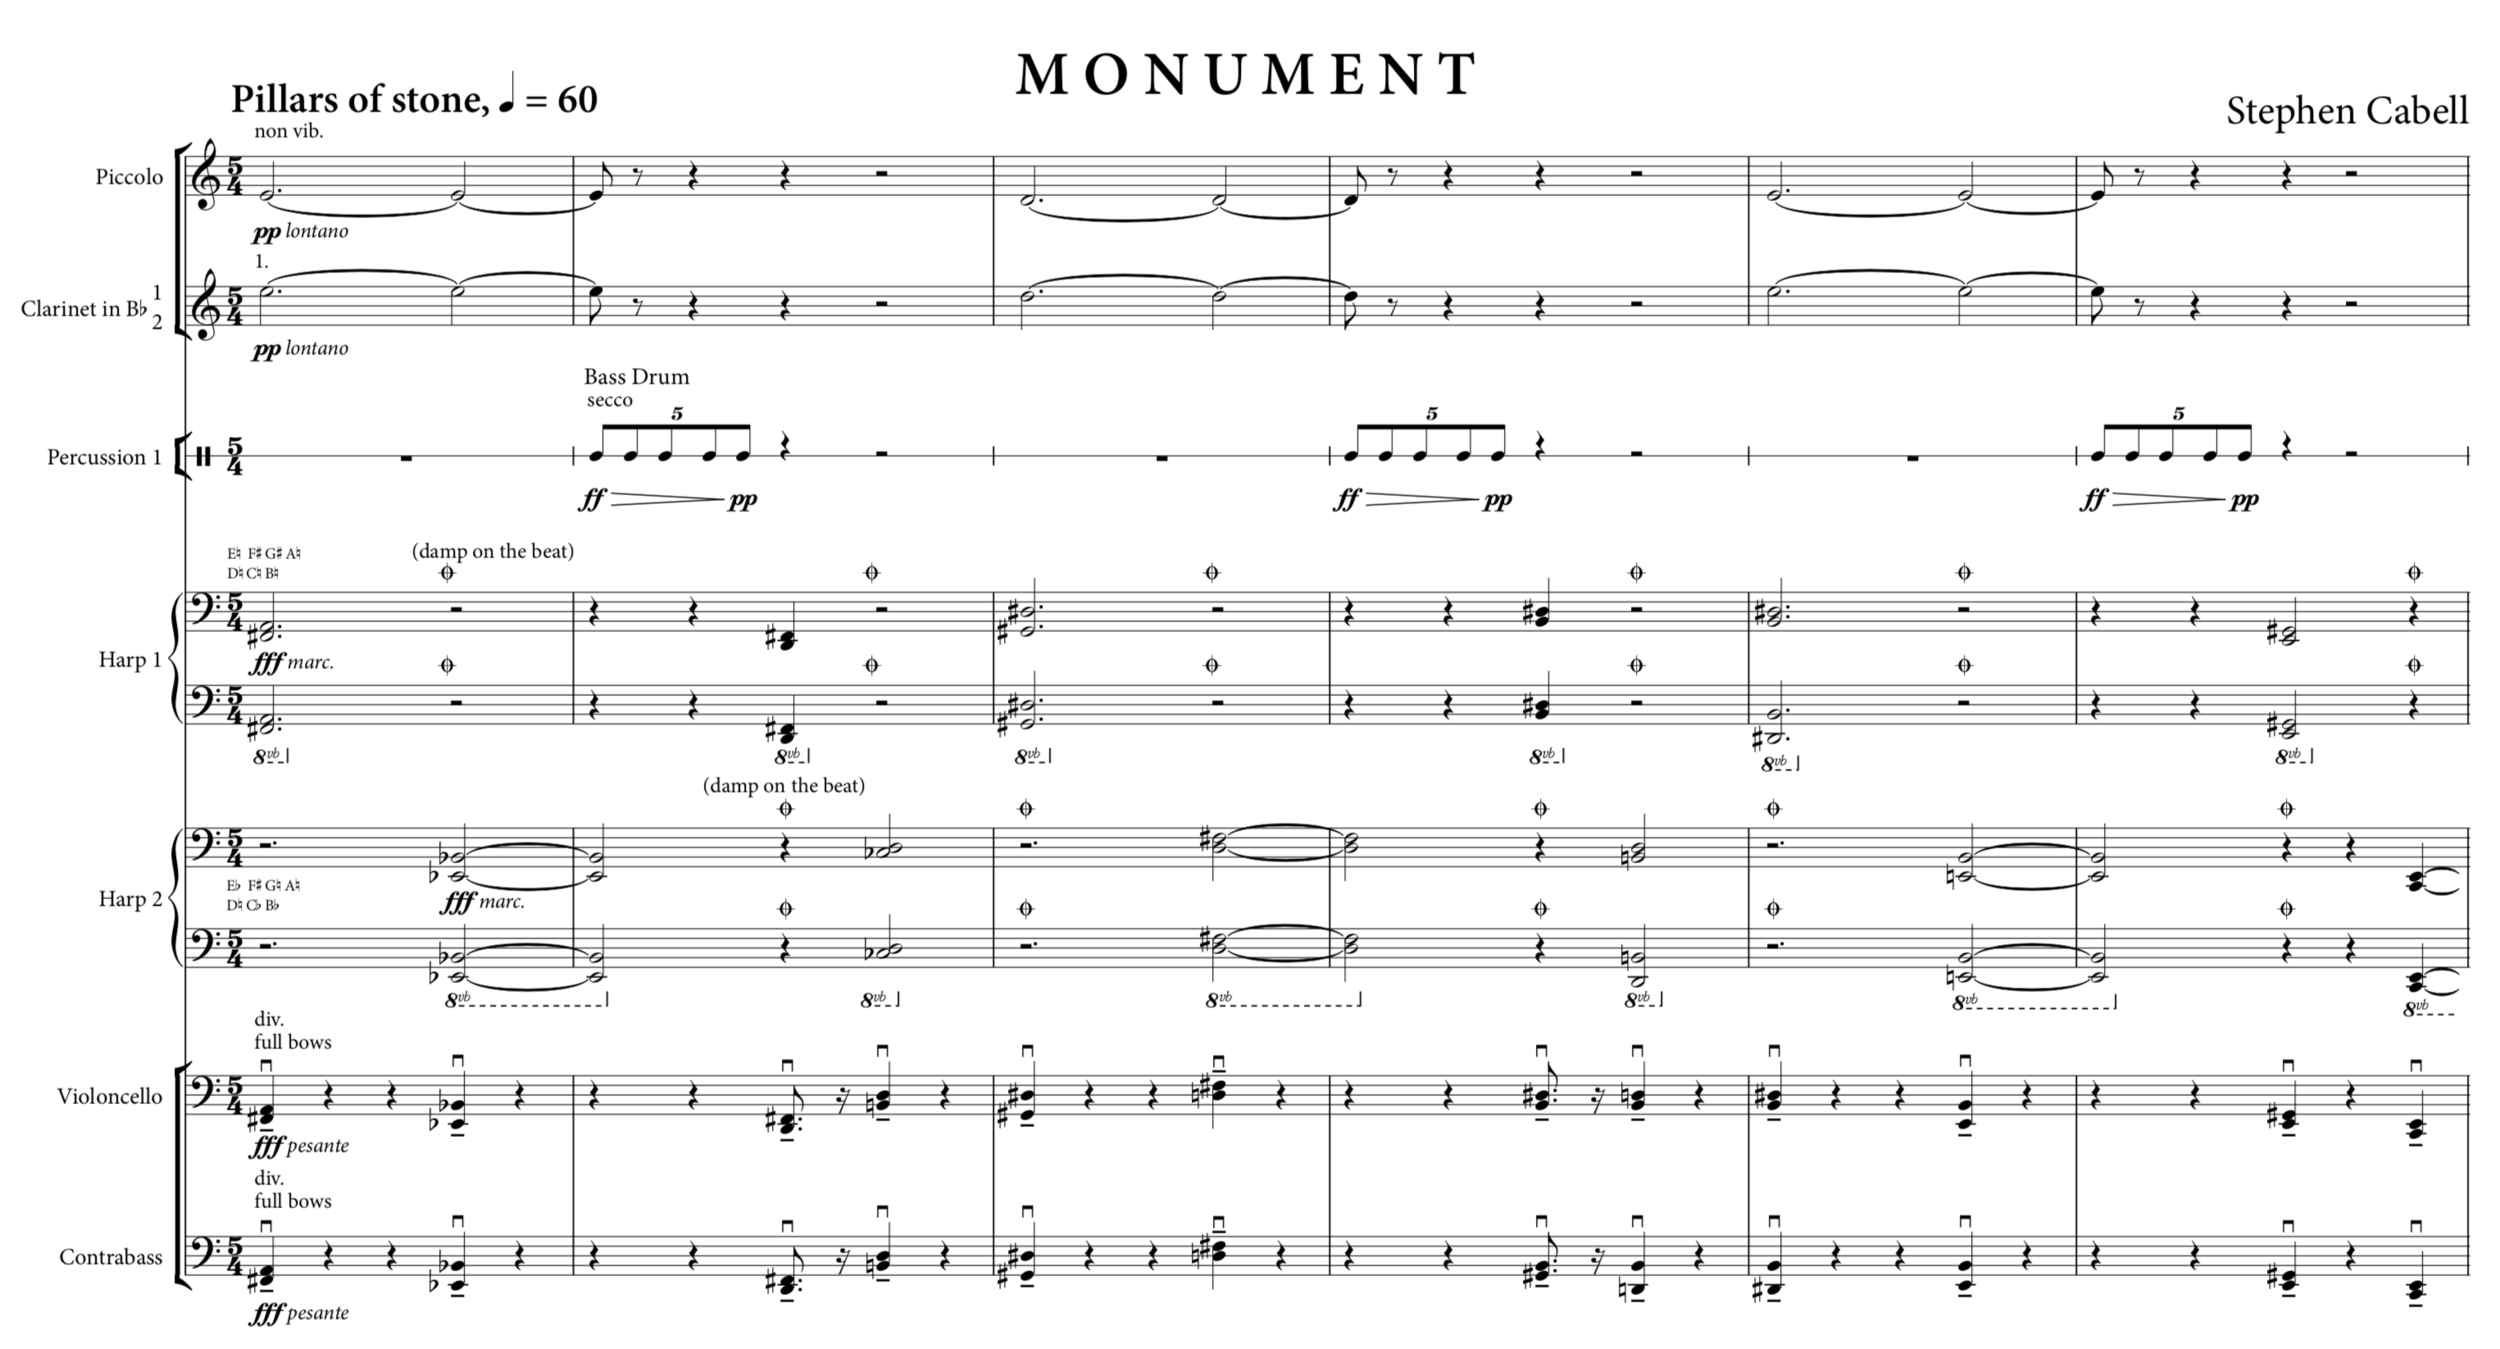 MONUMENT optimized score: page 1